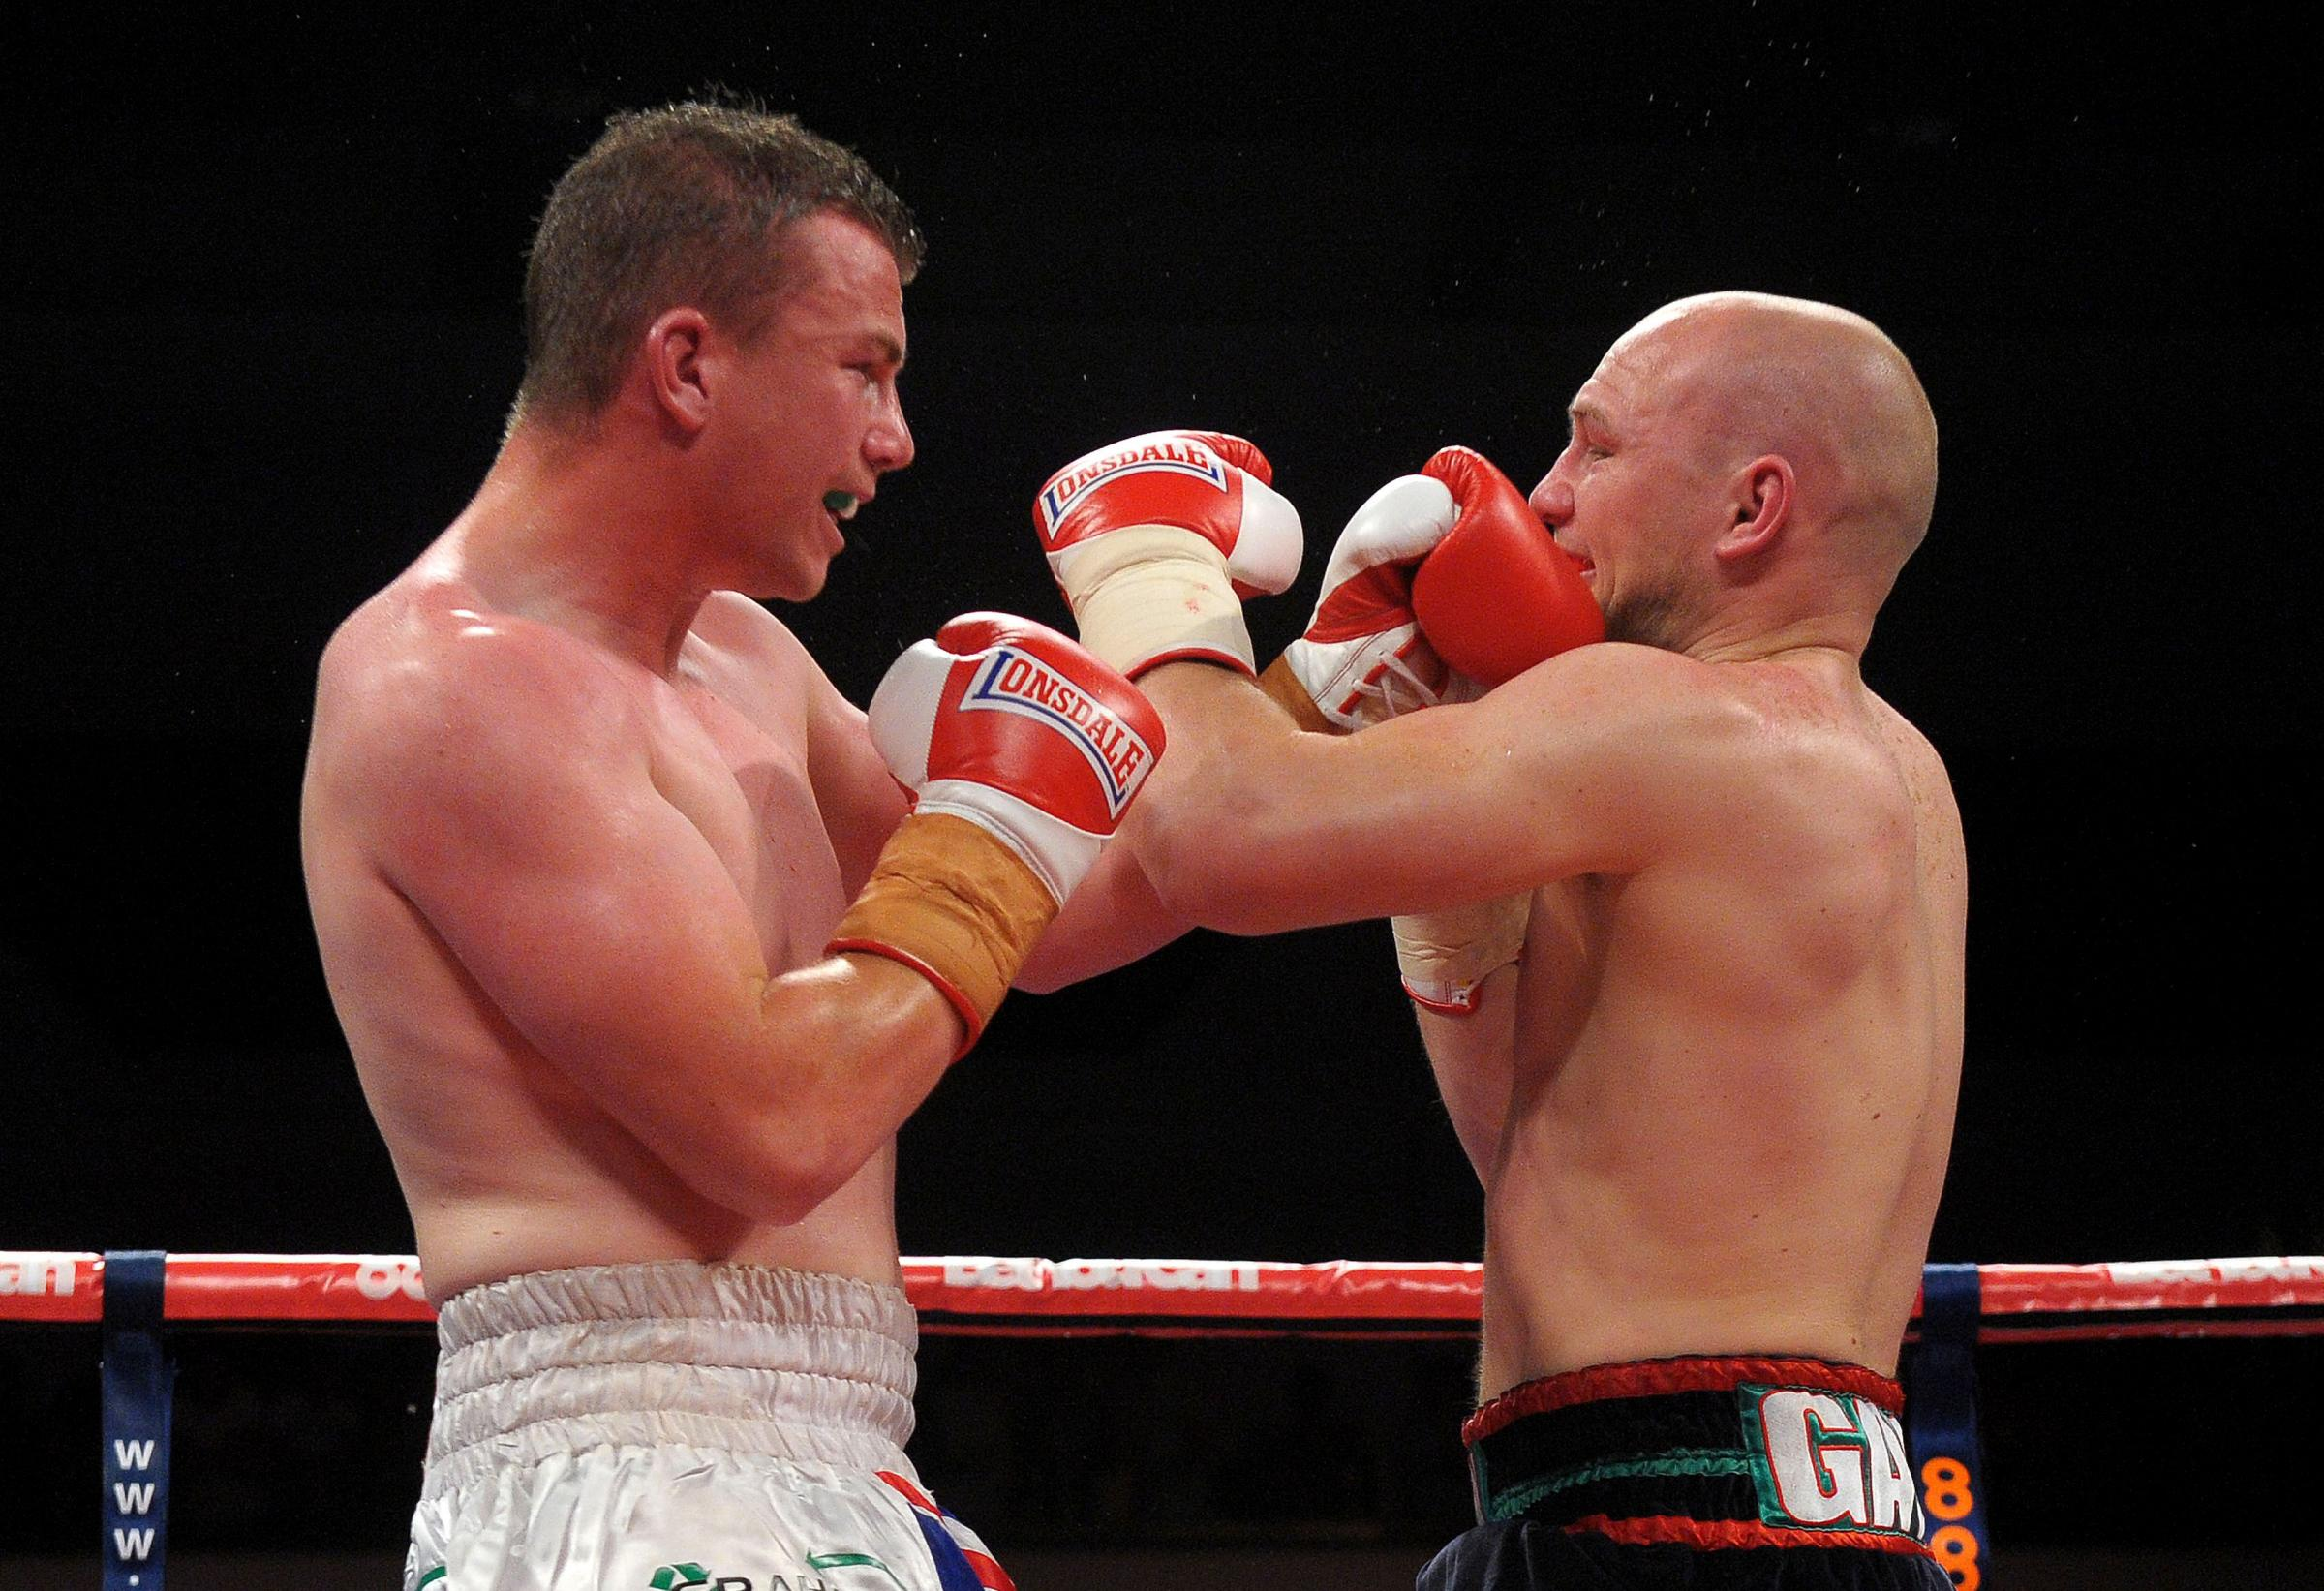 TITLE FIGHT: Gary Buckland, left, knows he needs a win after defeat to Gavin Rees last time out